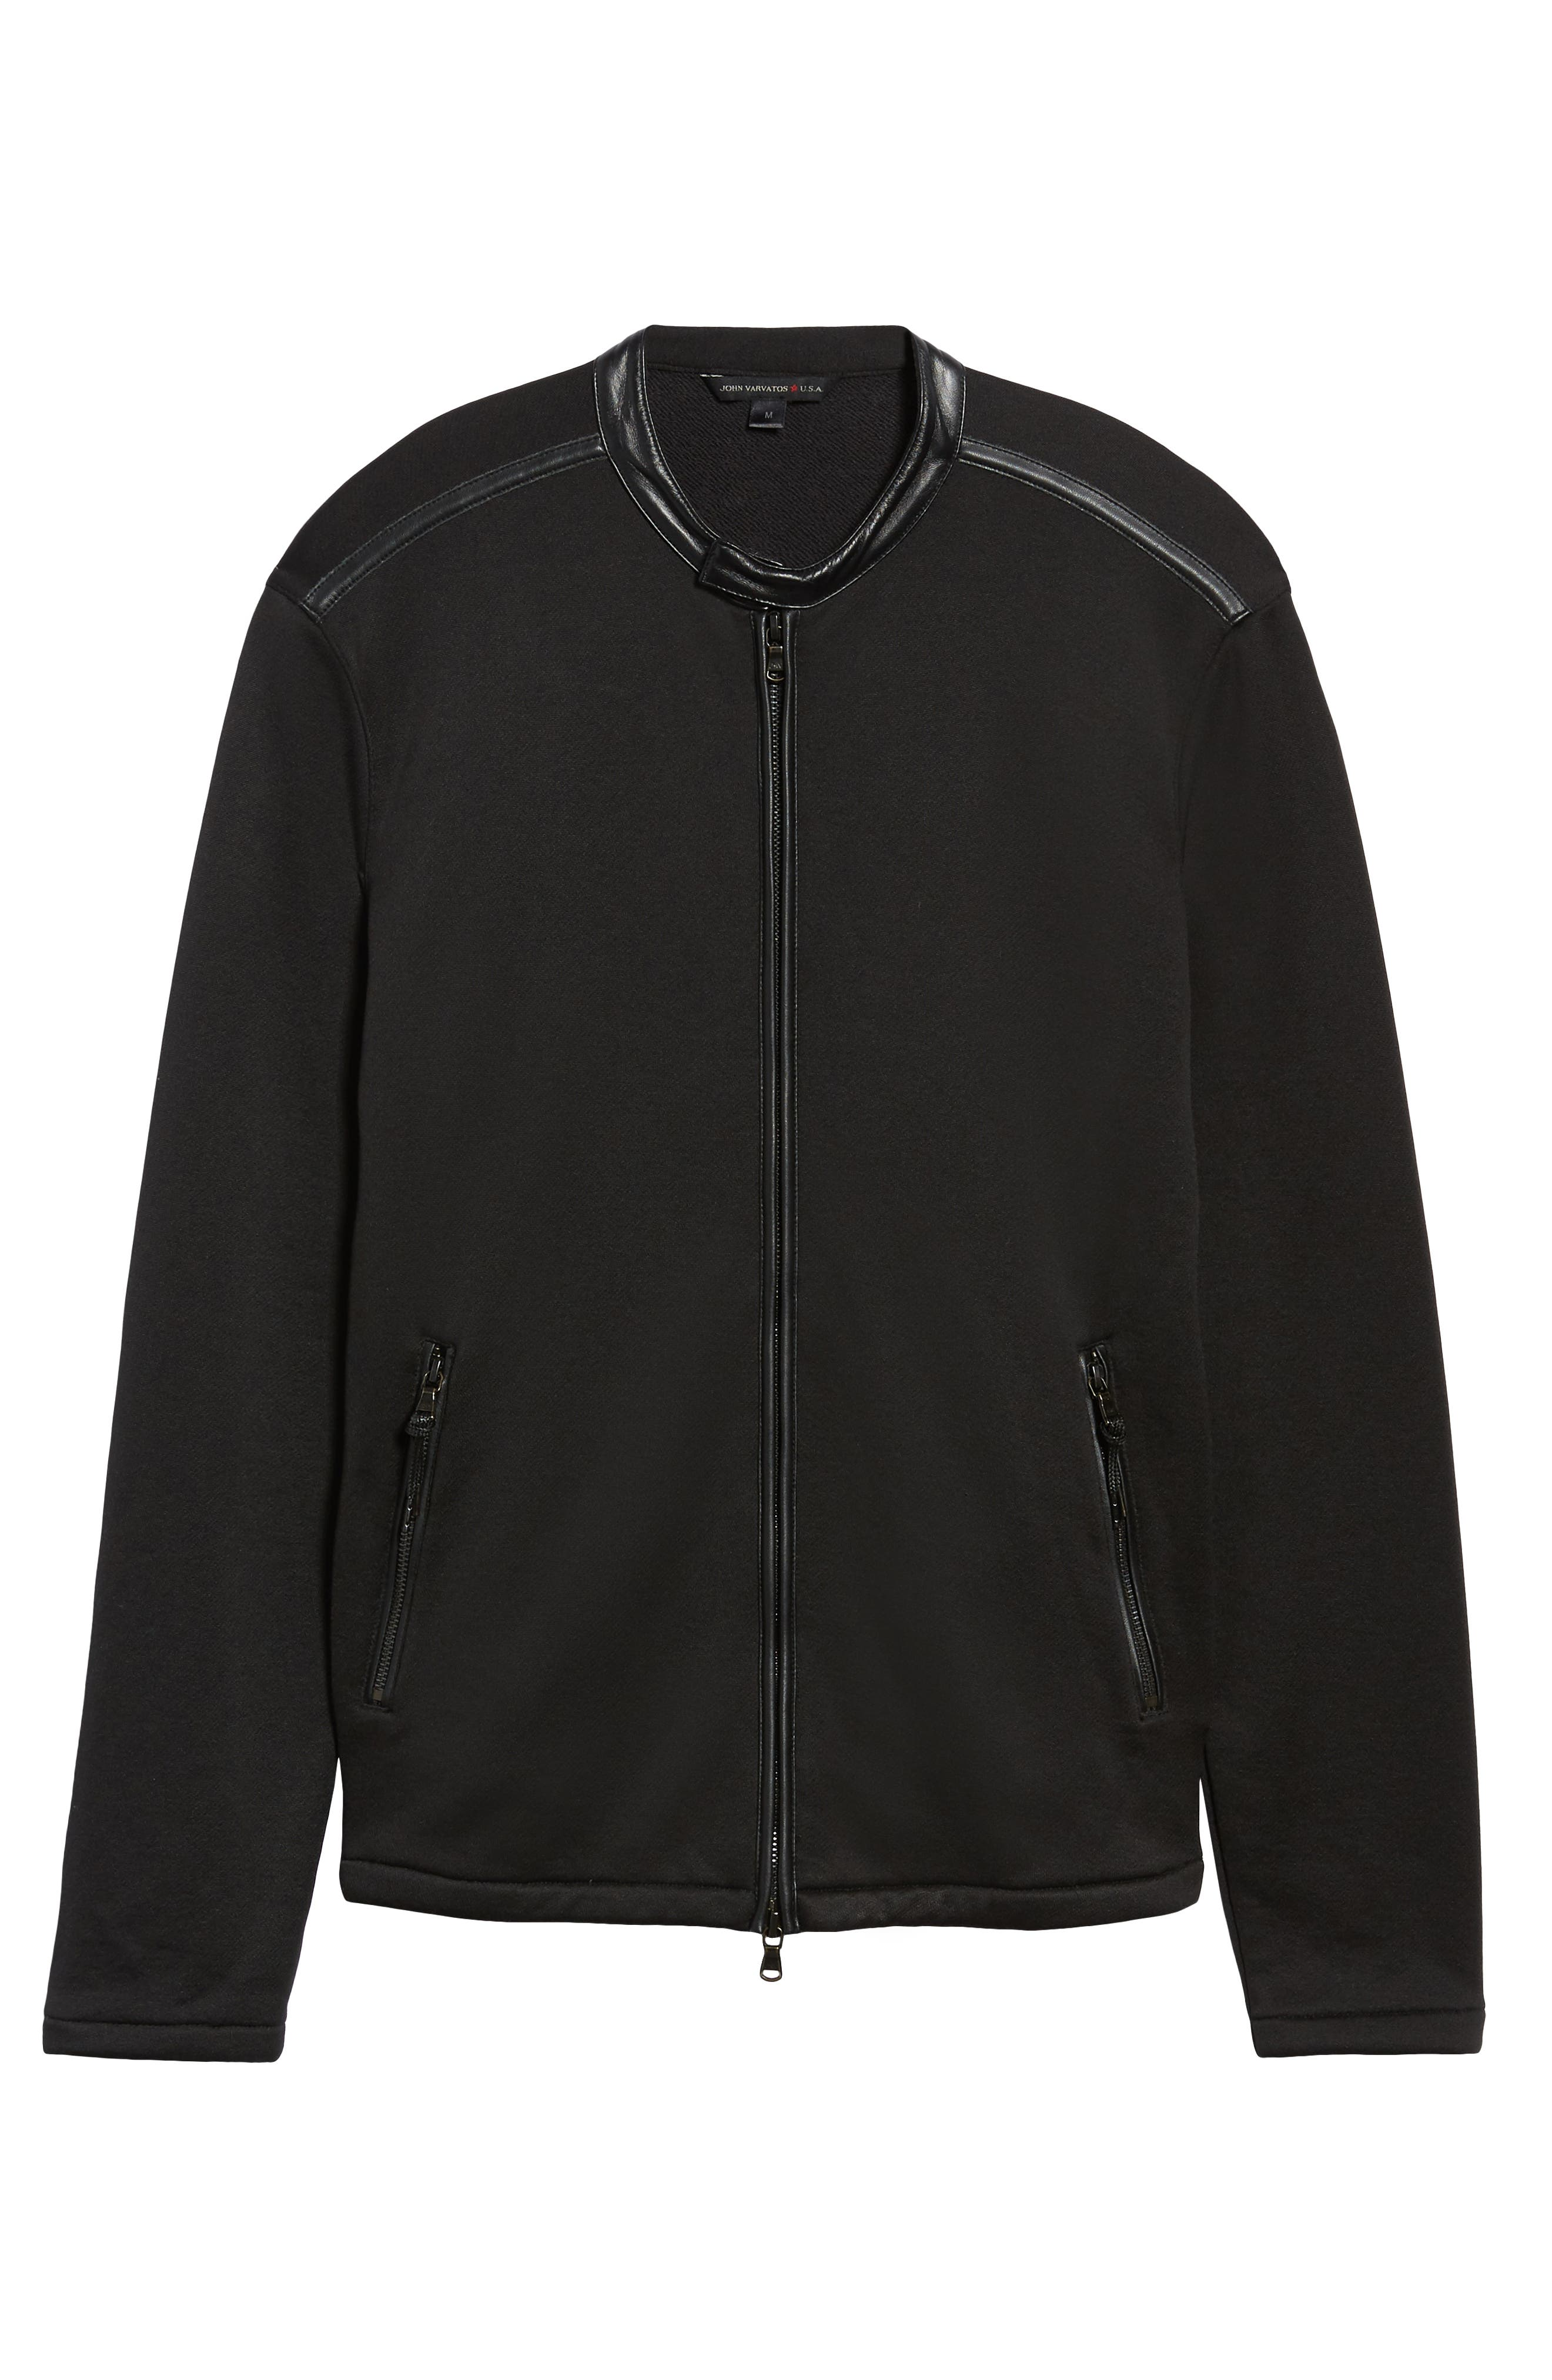 French Terry Zip Front Jacket,                             Alternate thumbnail 5, color,                             BLACK